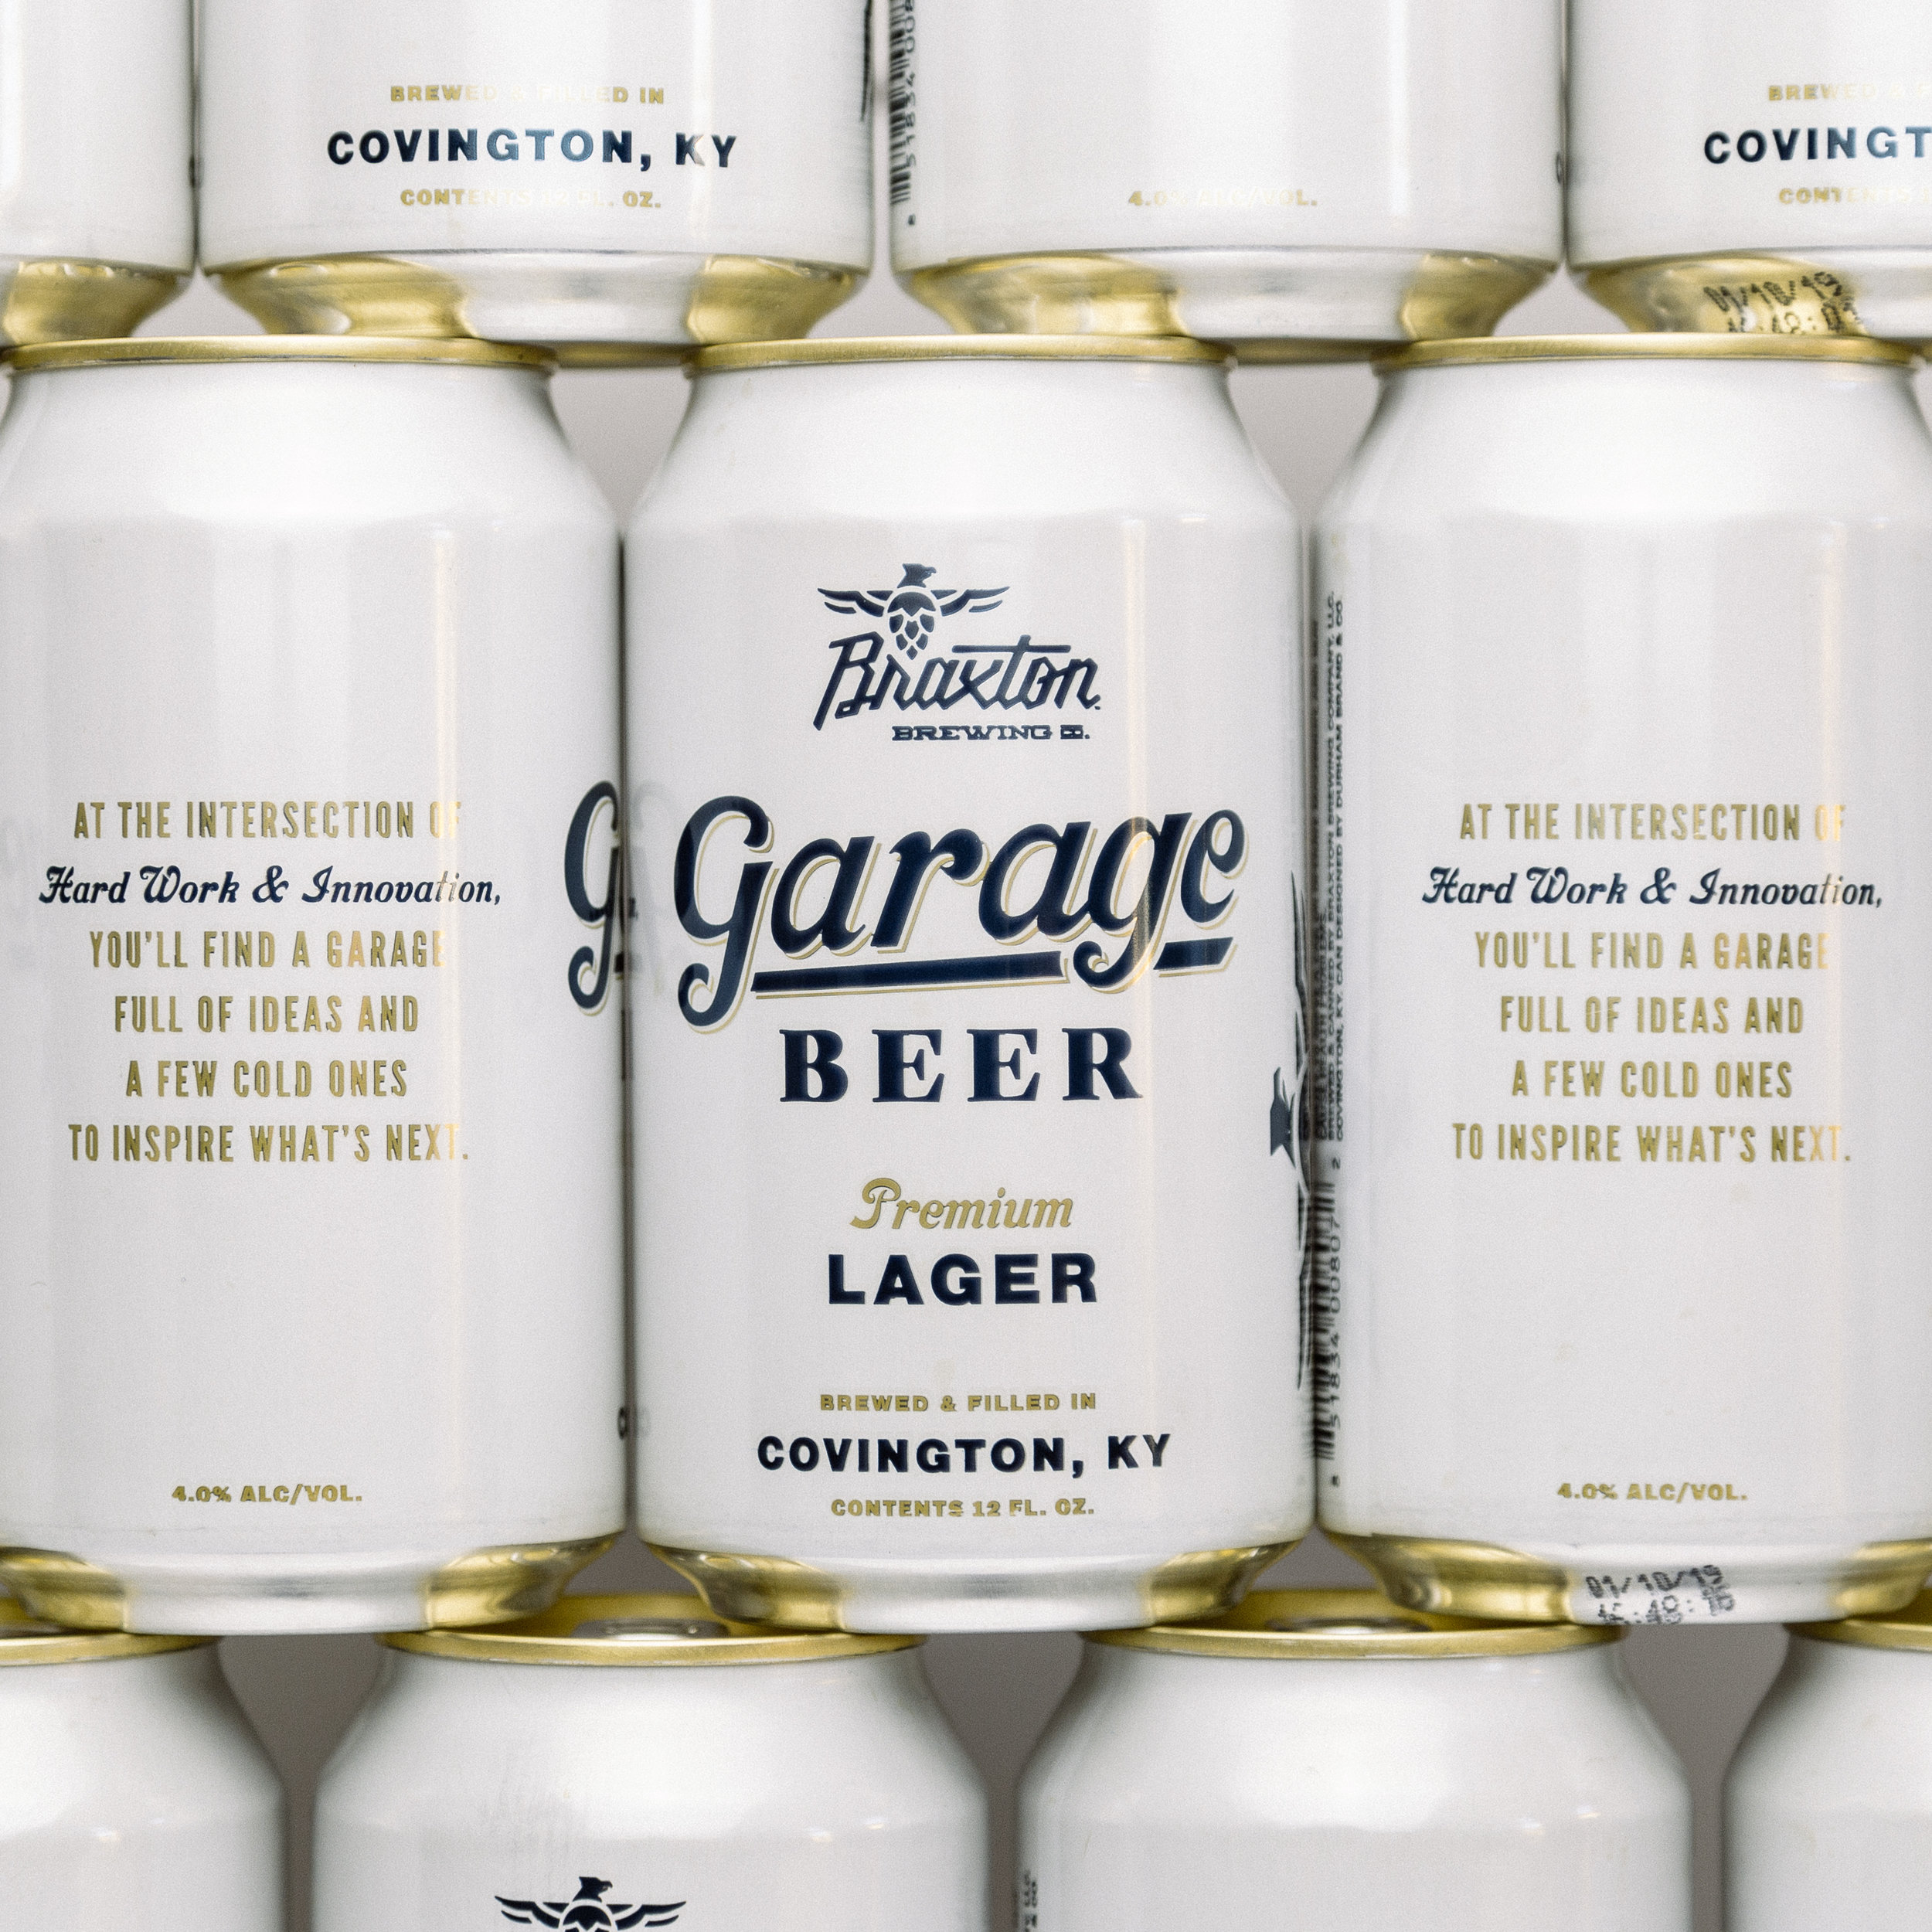 Garage Beer - At the Intersection of Hardwork & Innovation